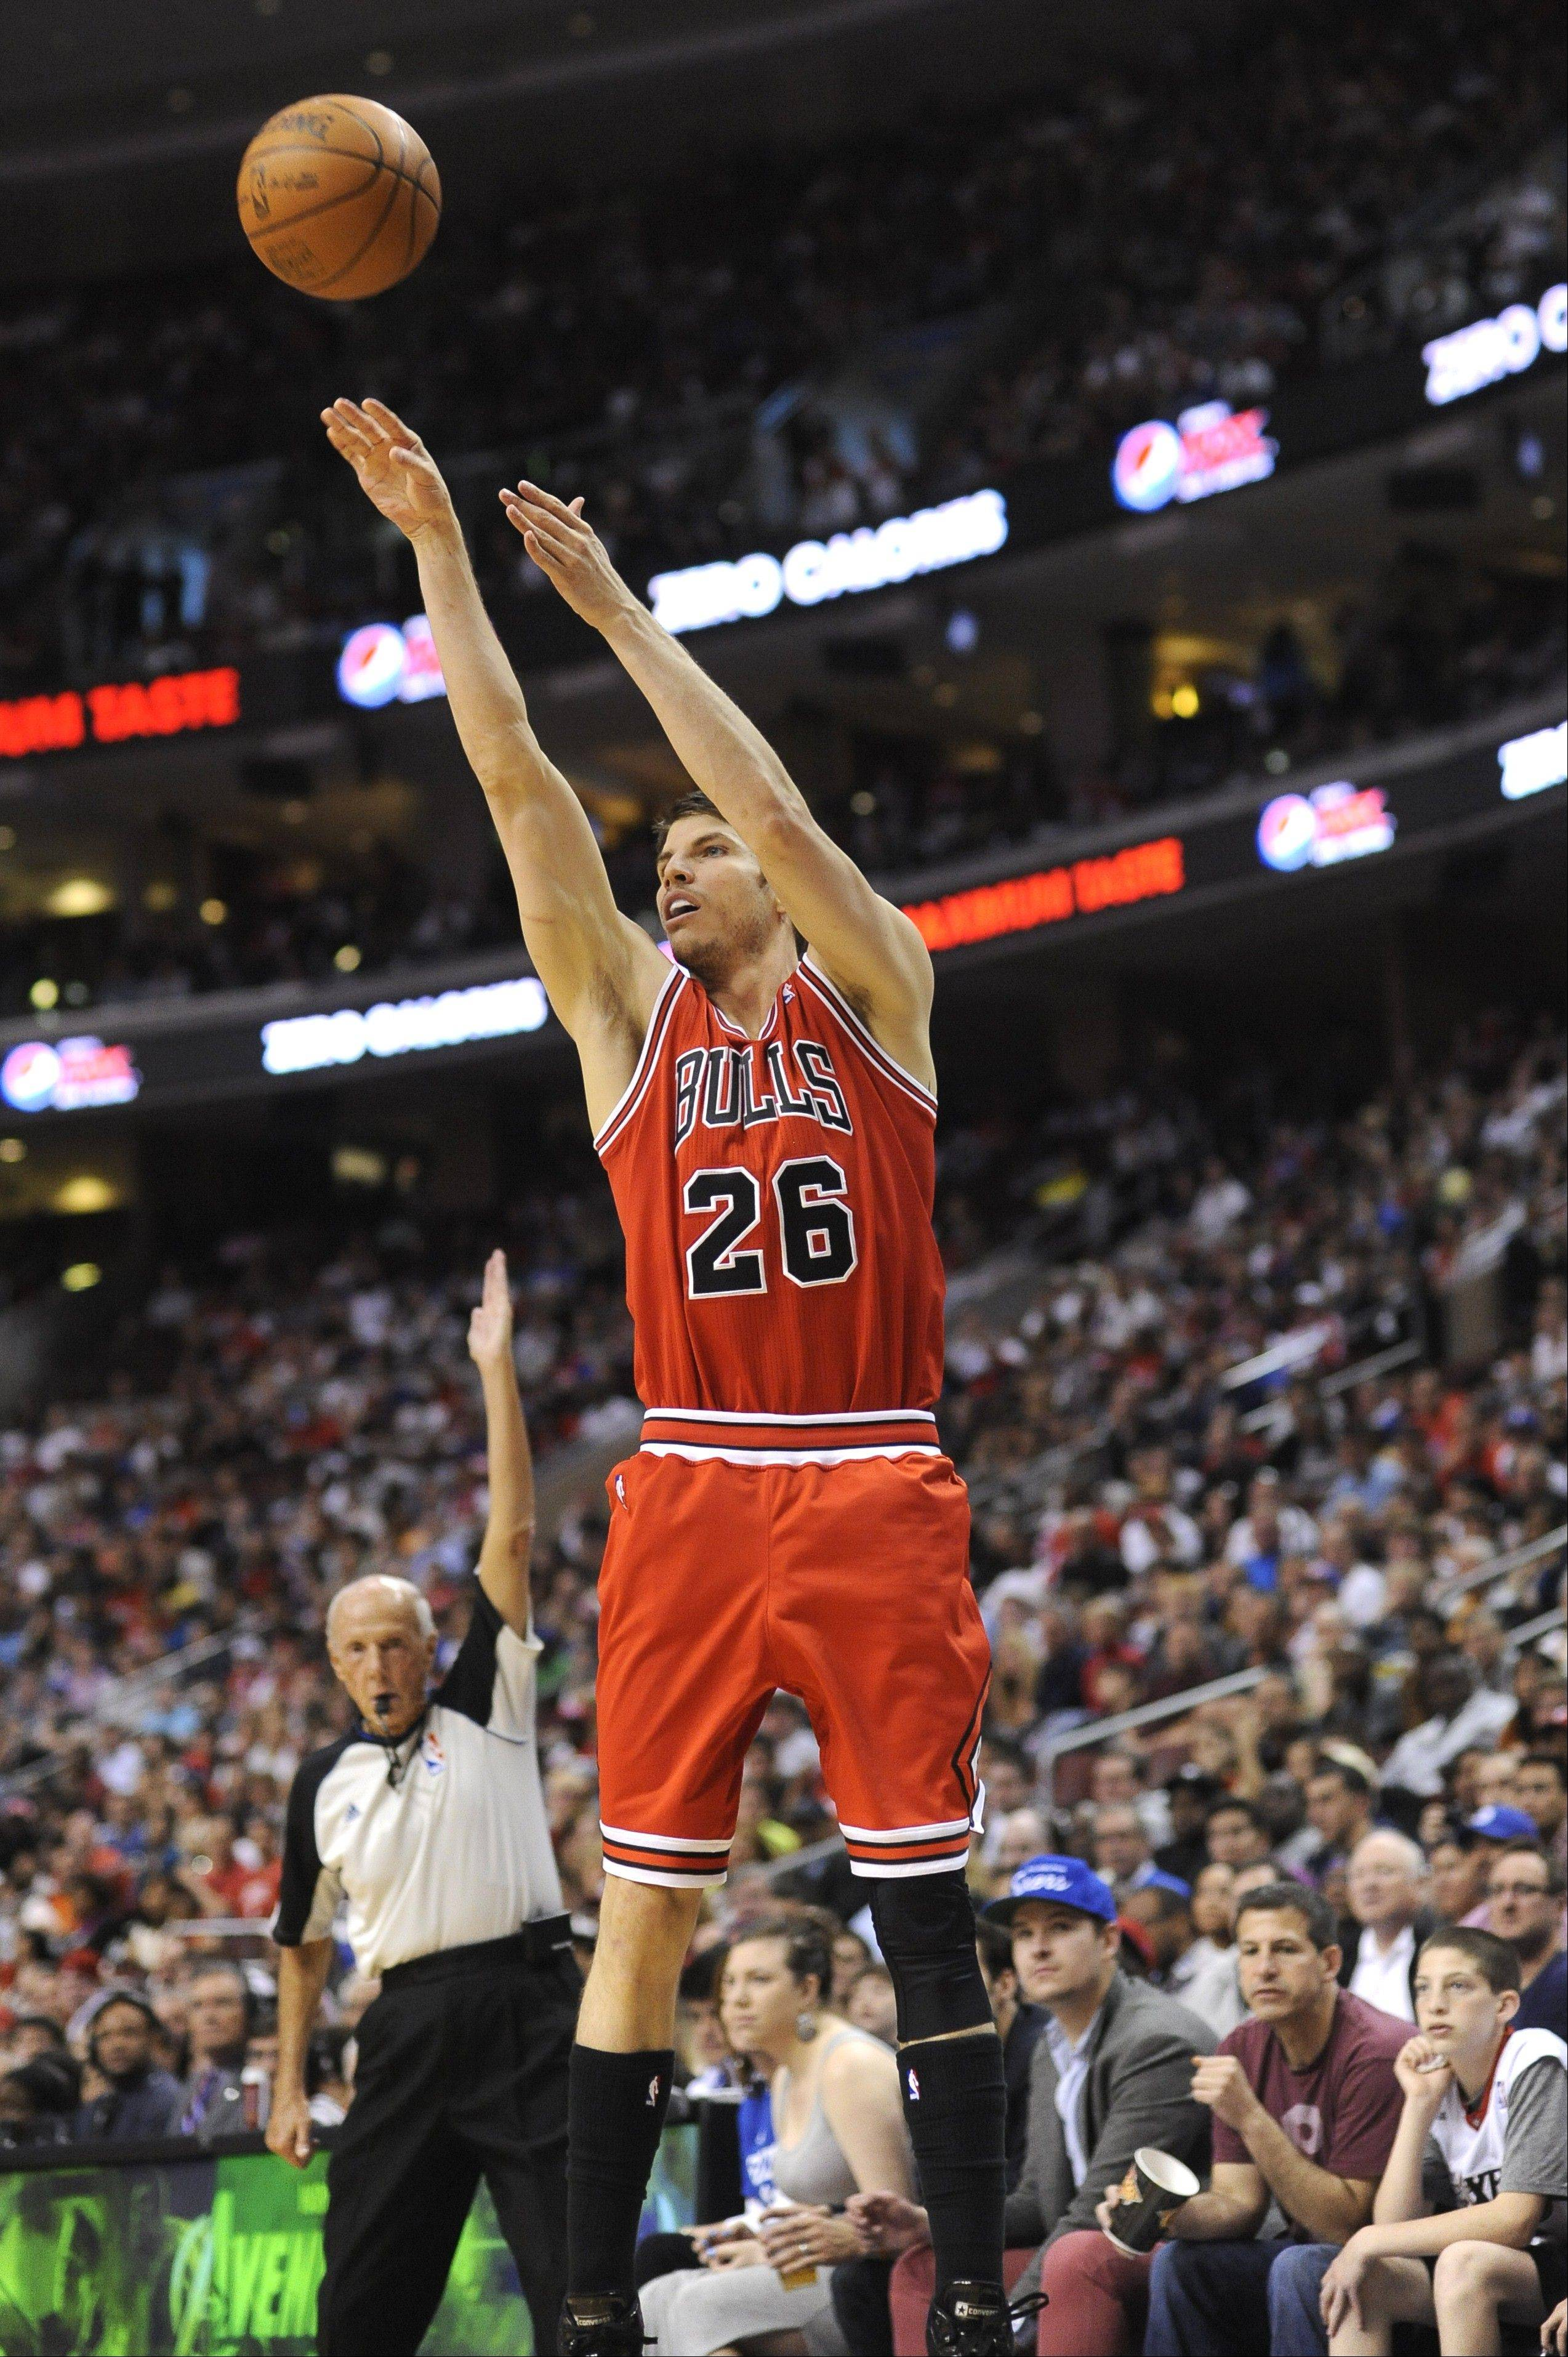 Bulls fans will recall sharpshooter Kyle Korver firing up 3-pointers before he signed with the Hawks as a free agent. Korver owns the NBA record of 102 straight games -- and counting -- making at least one 3-point basket.